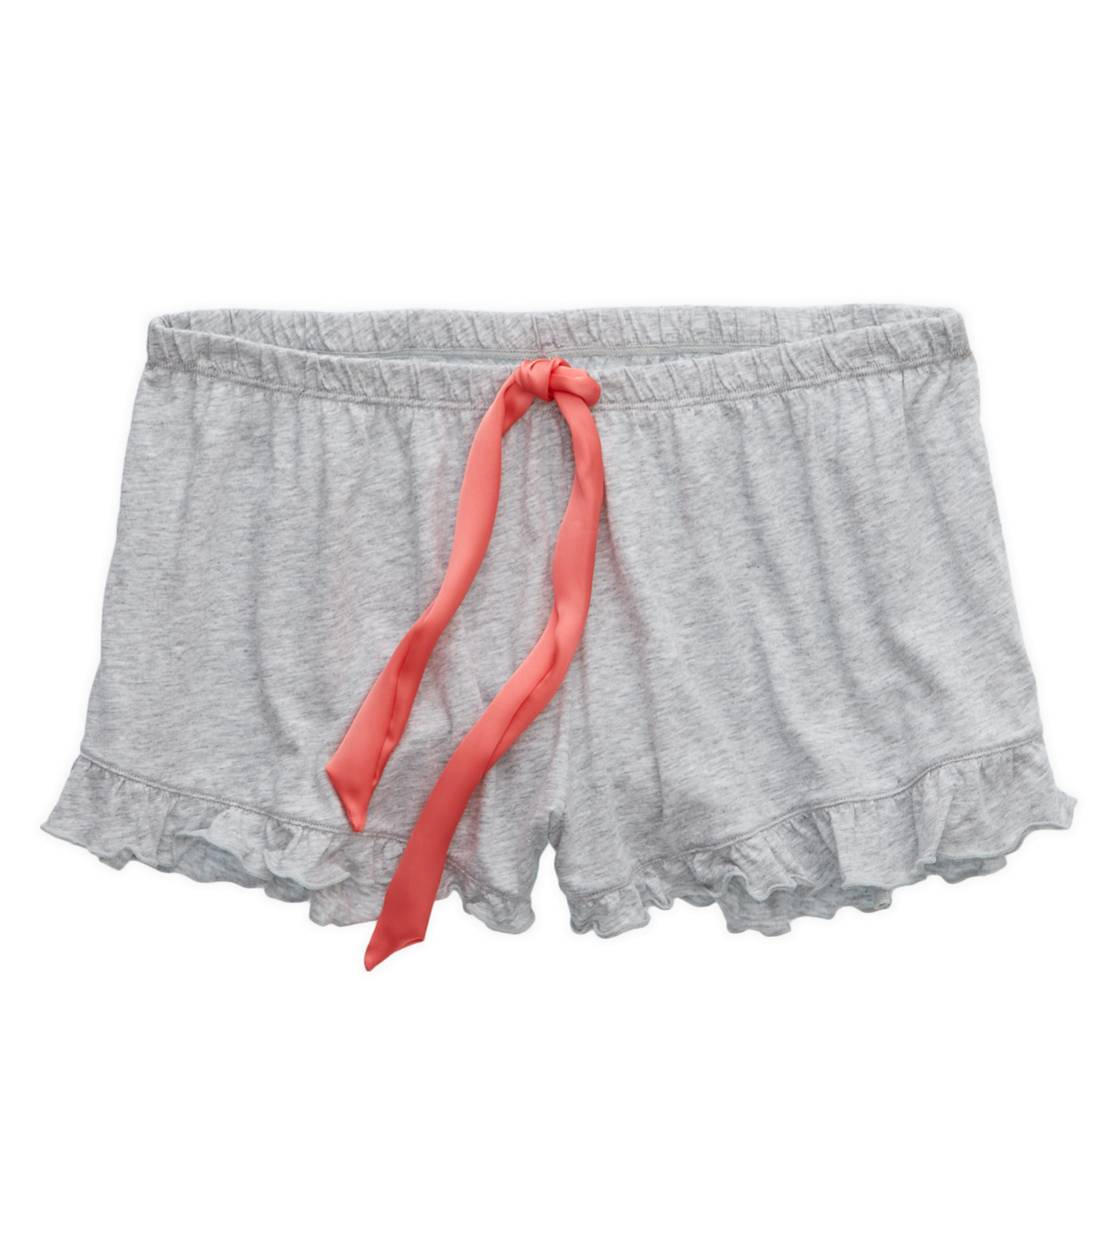 Medium Heather Grey Aerie Softest Ruffle Boxer